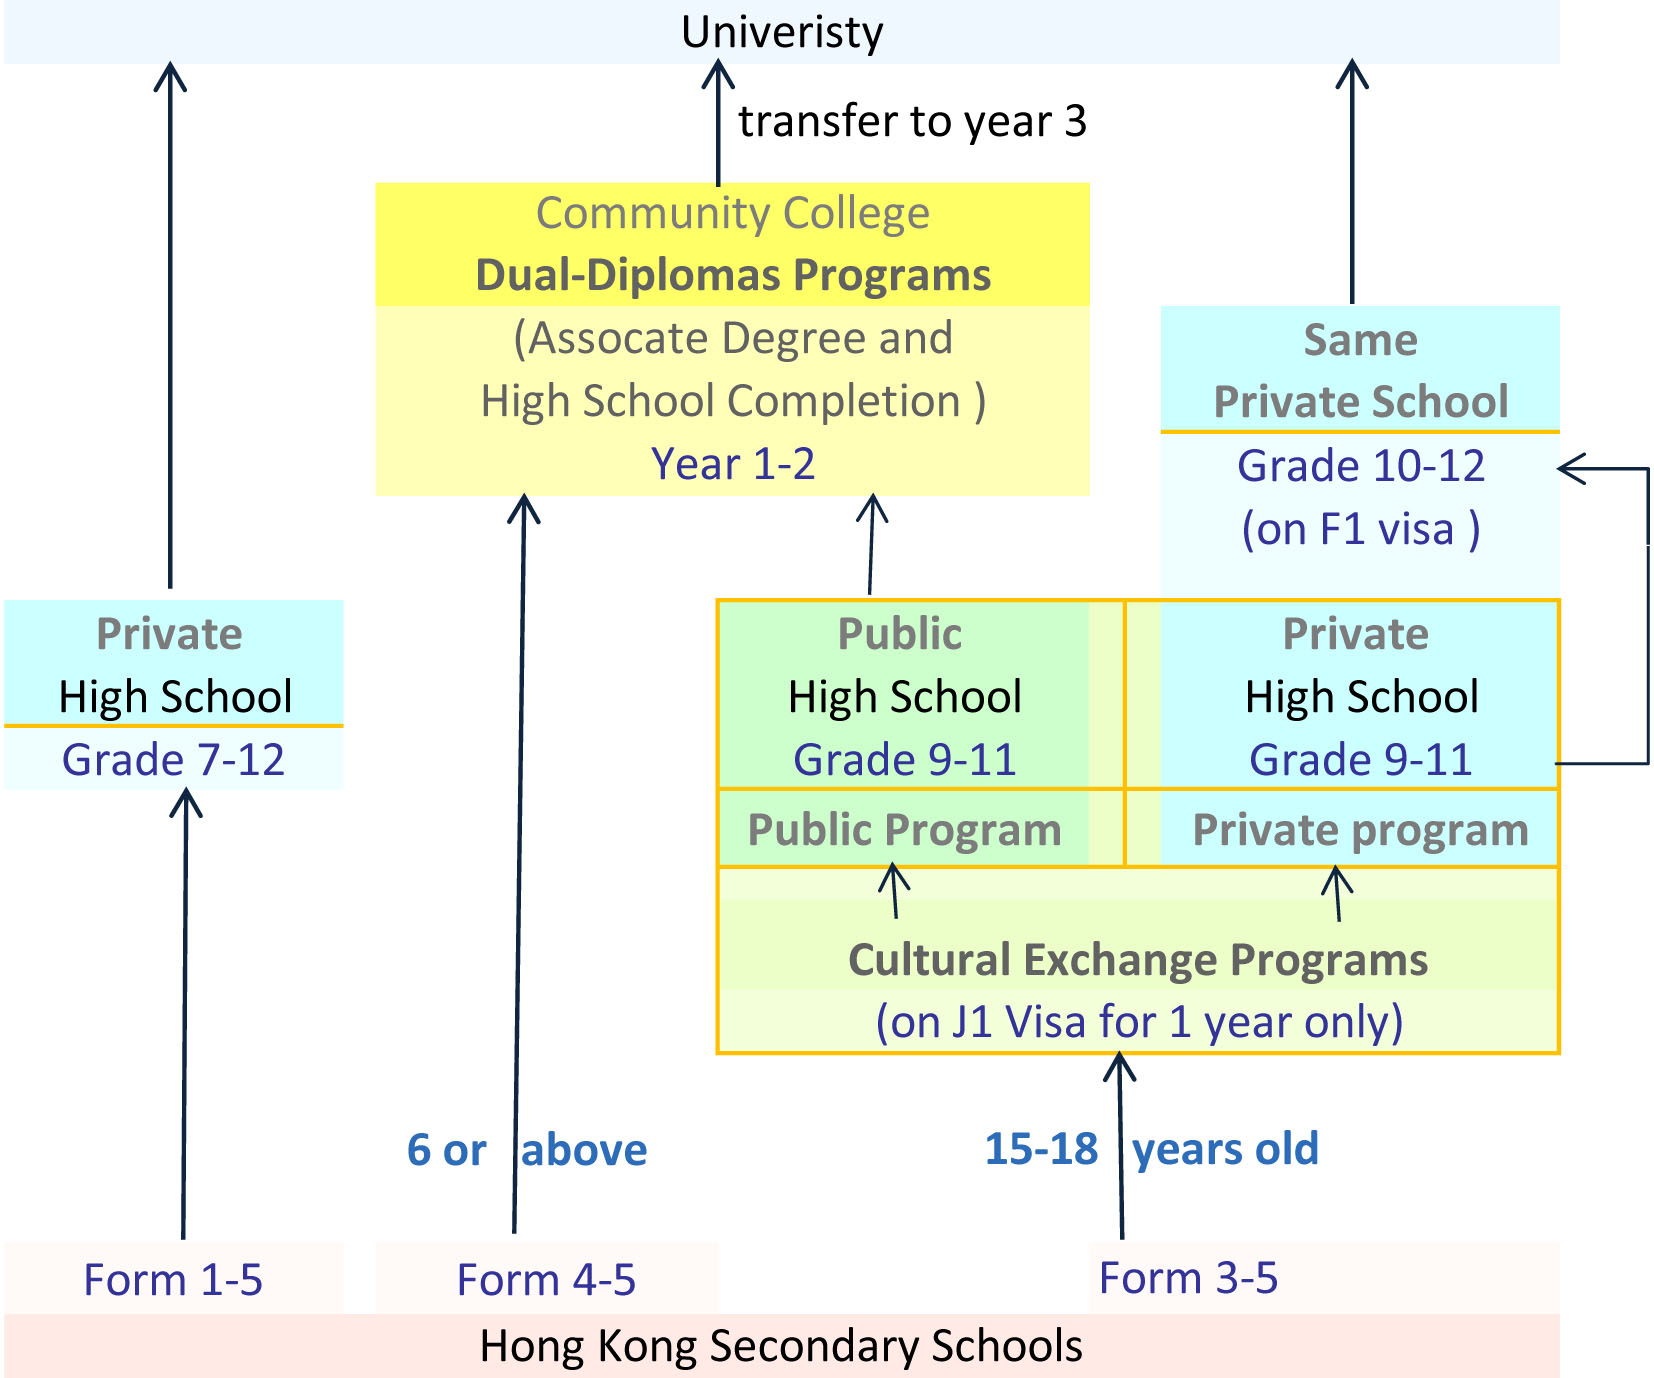 Paths for Hong Kong Secondary School Students